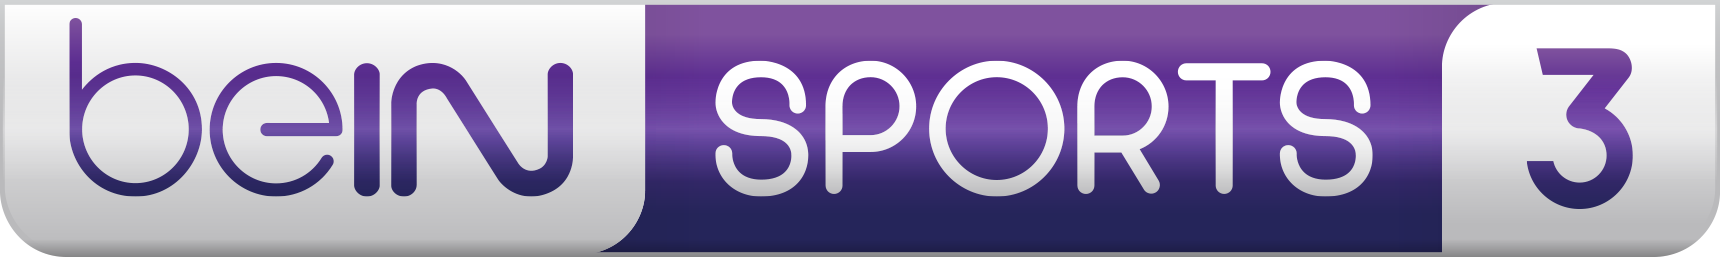 Image result for bein sports 3.png